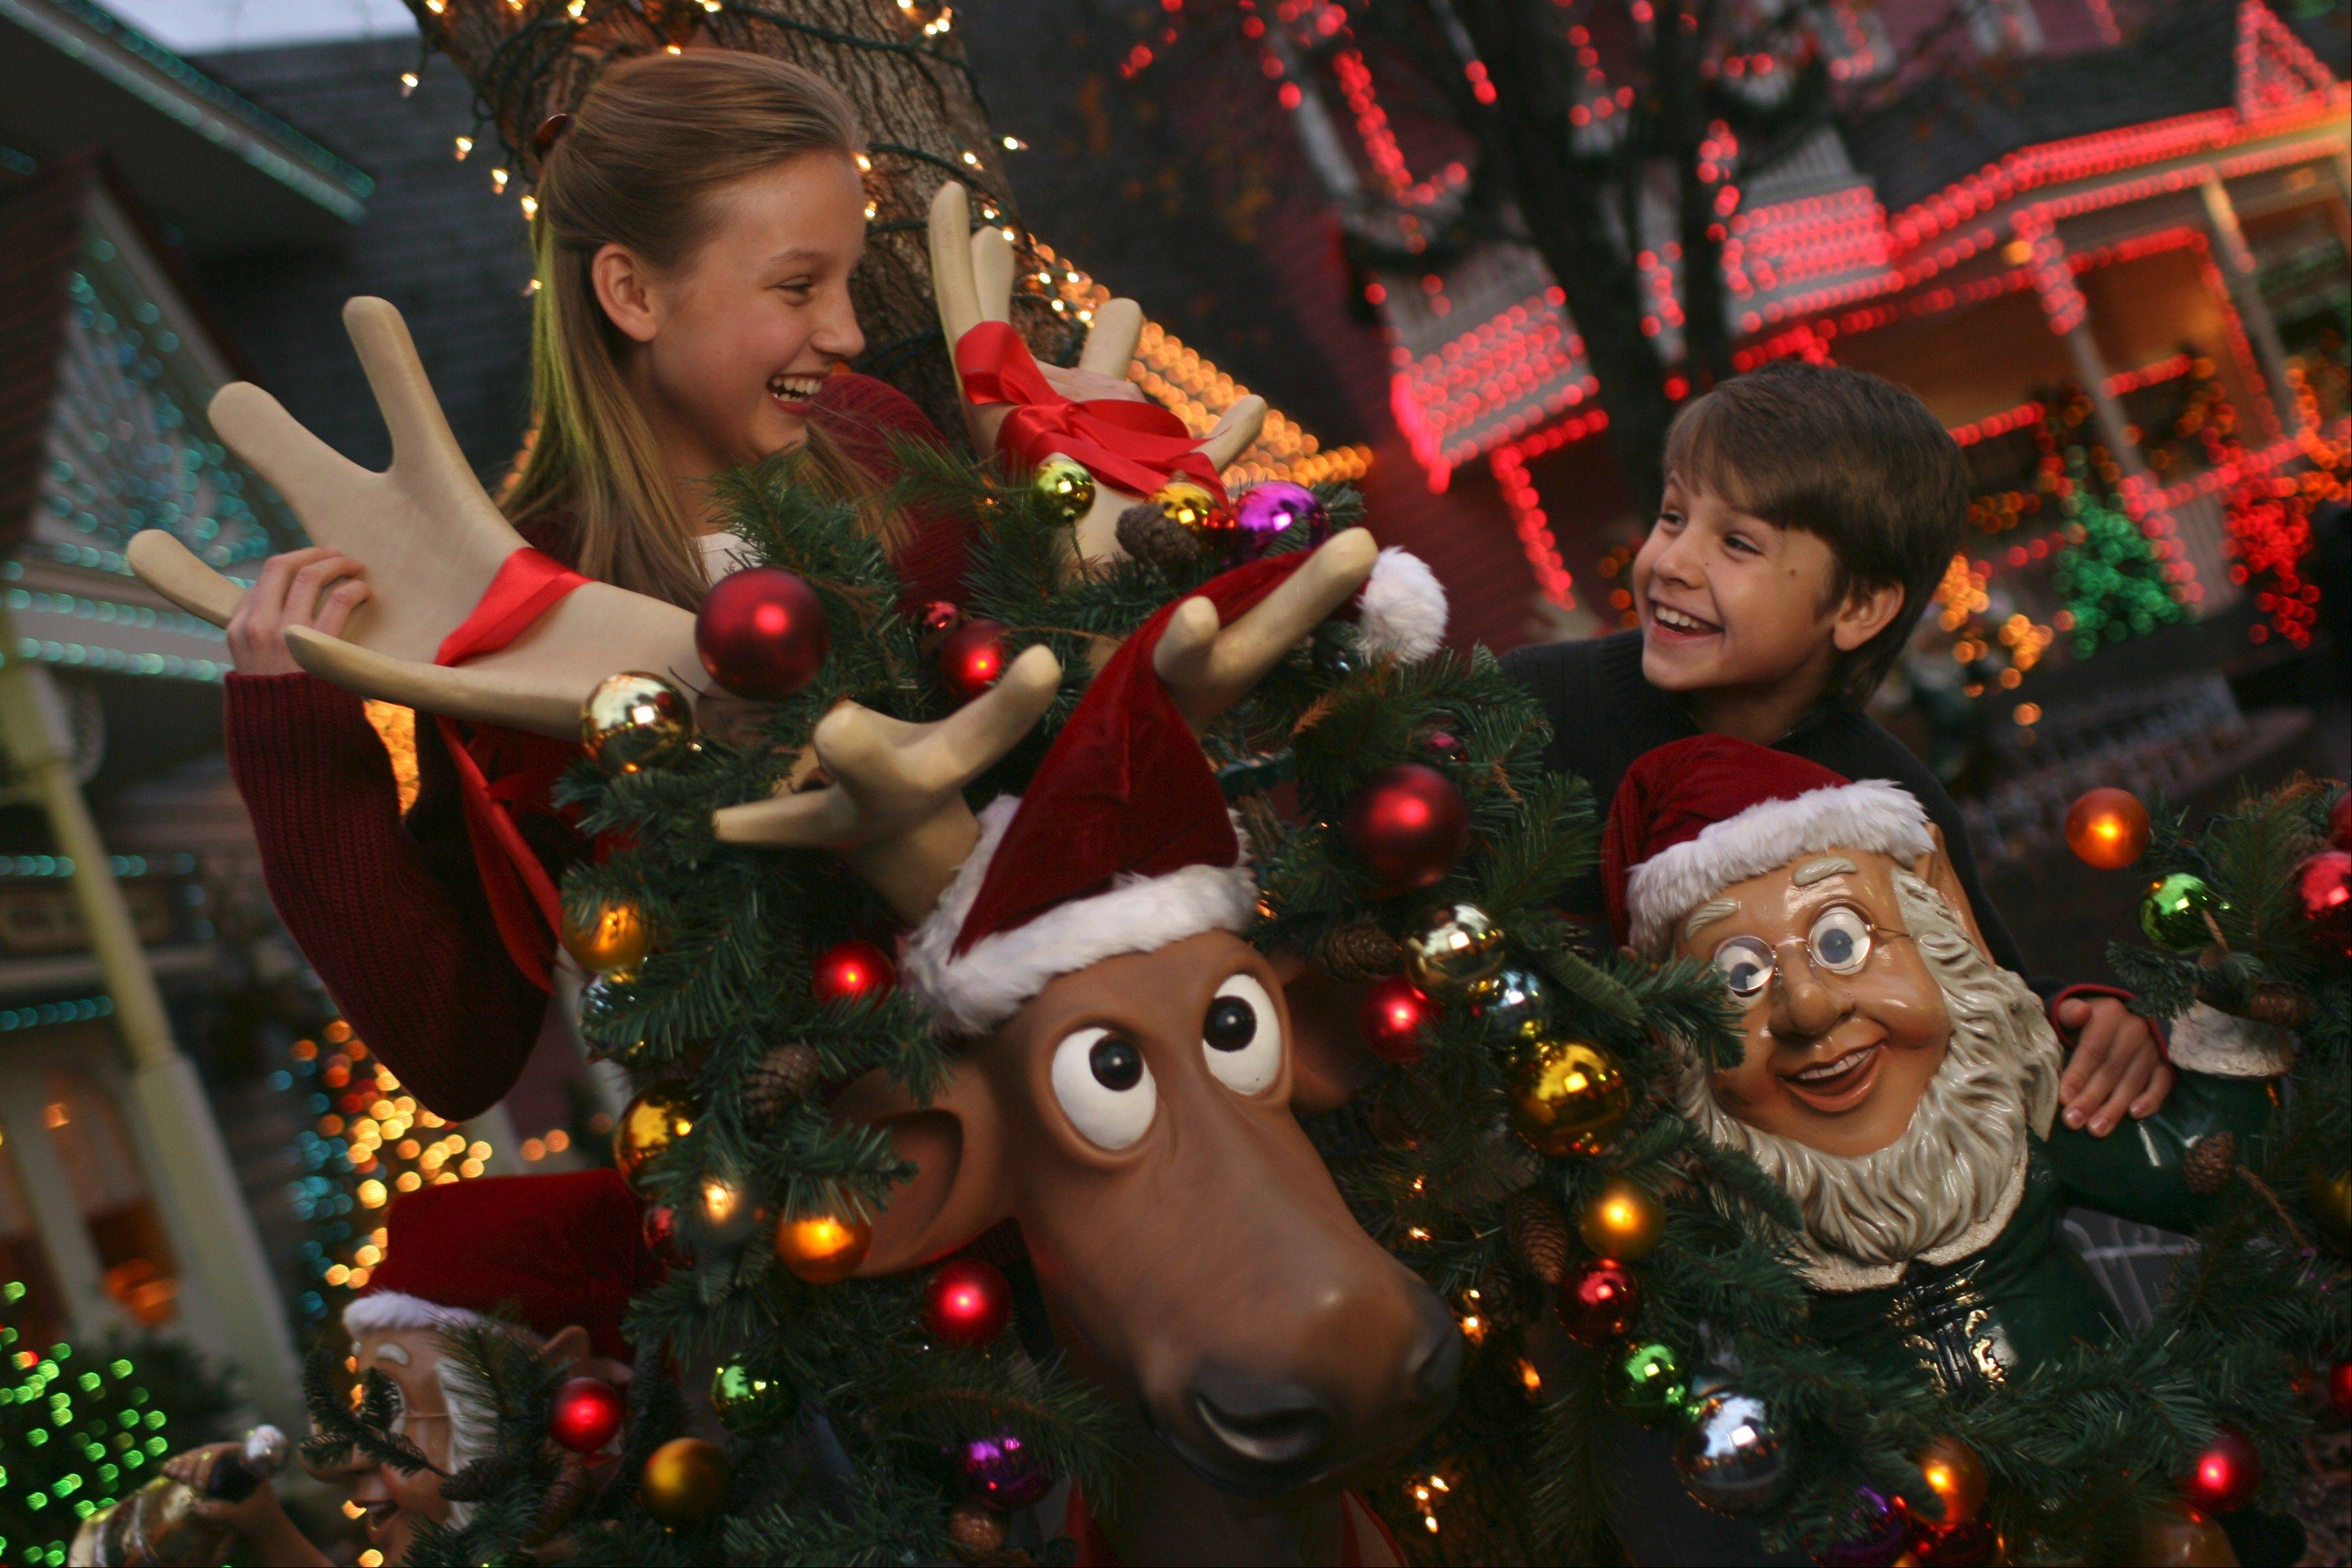 Kids get into the holiday spirit during the Smoky Mountain Christmas festival at Dollywood in Pigeon Forge, Tenn.